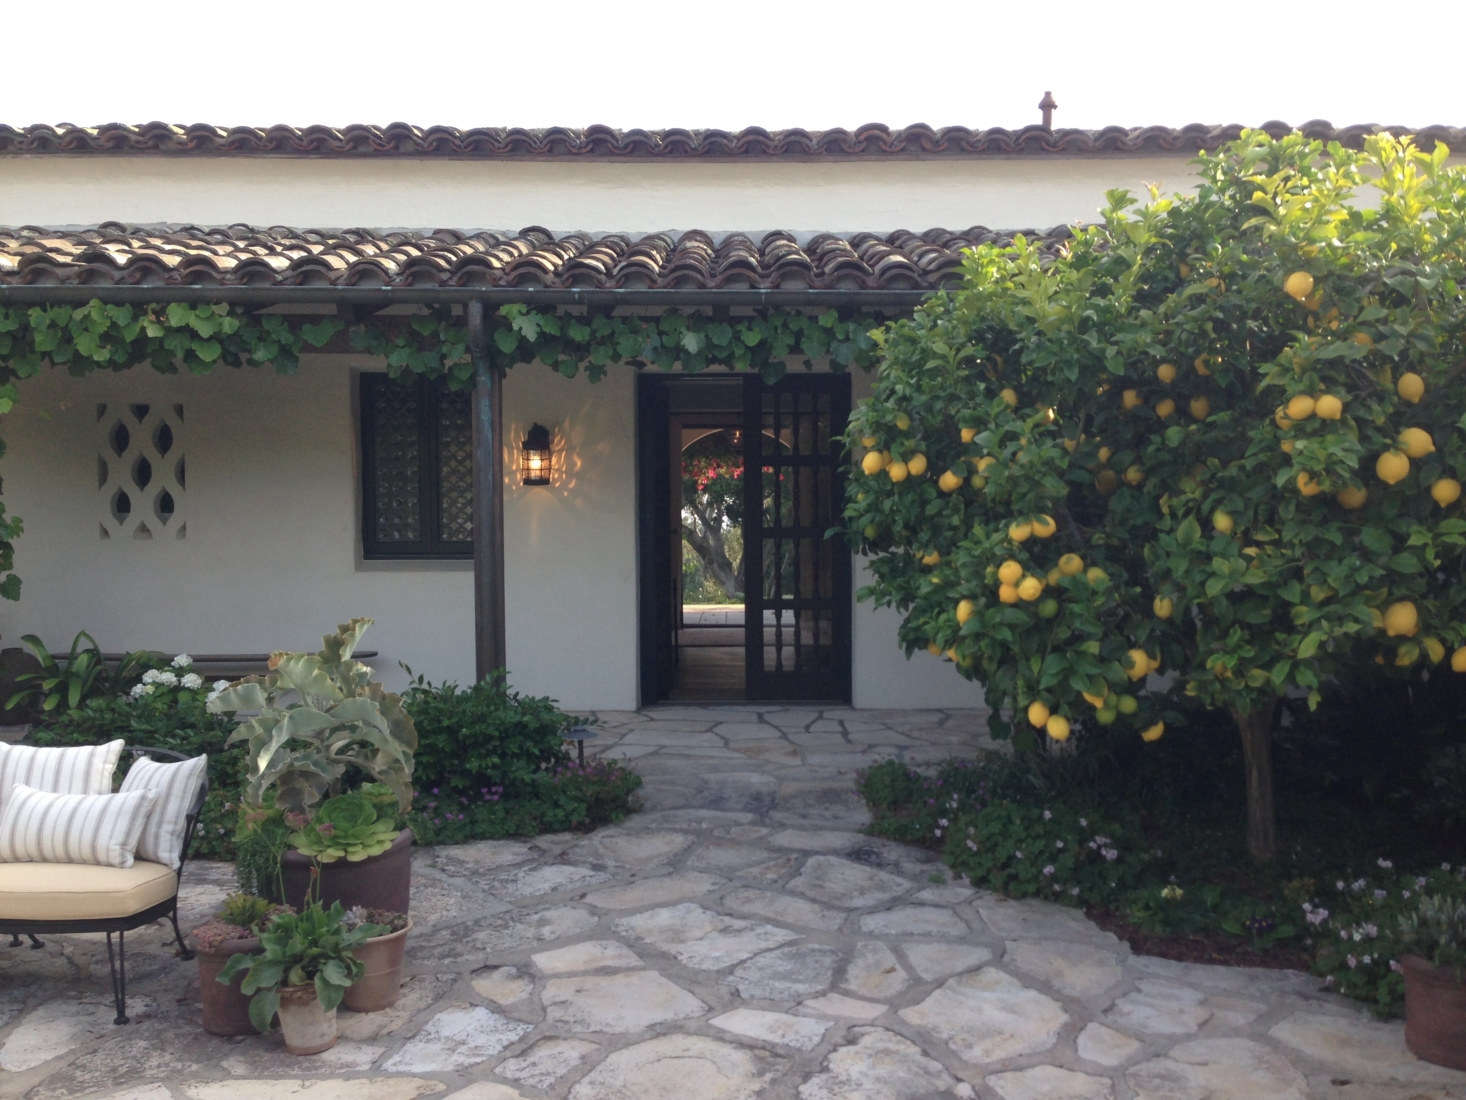 In the interior courtyard, a lemon tree lends a Mediterranean feel—and some respite from the sun. Throughout, Sosa softened the existing hardscaping with informal clusters of potted drought-resistant plants. Photograph courtesy of Roberto Sosa.